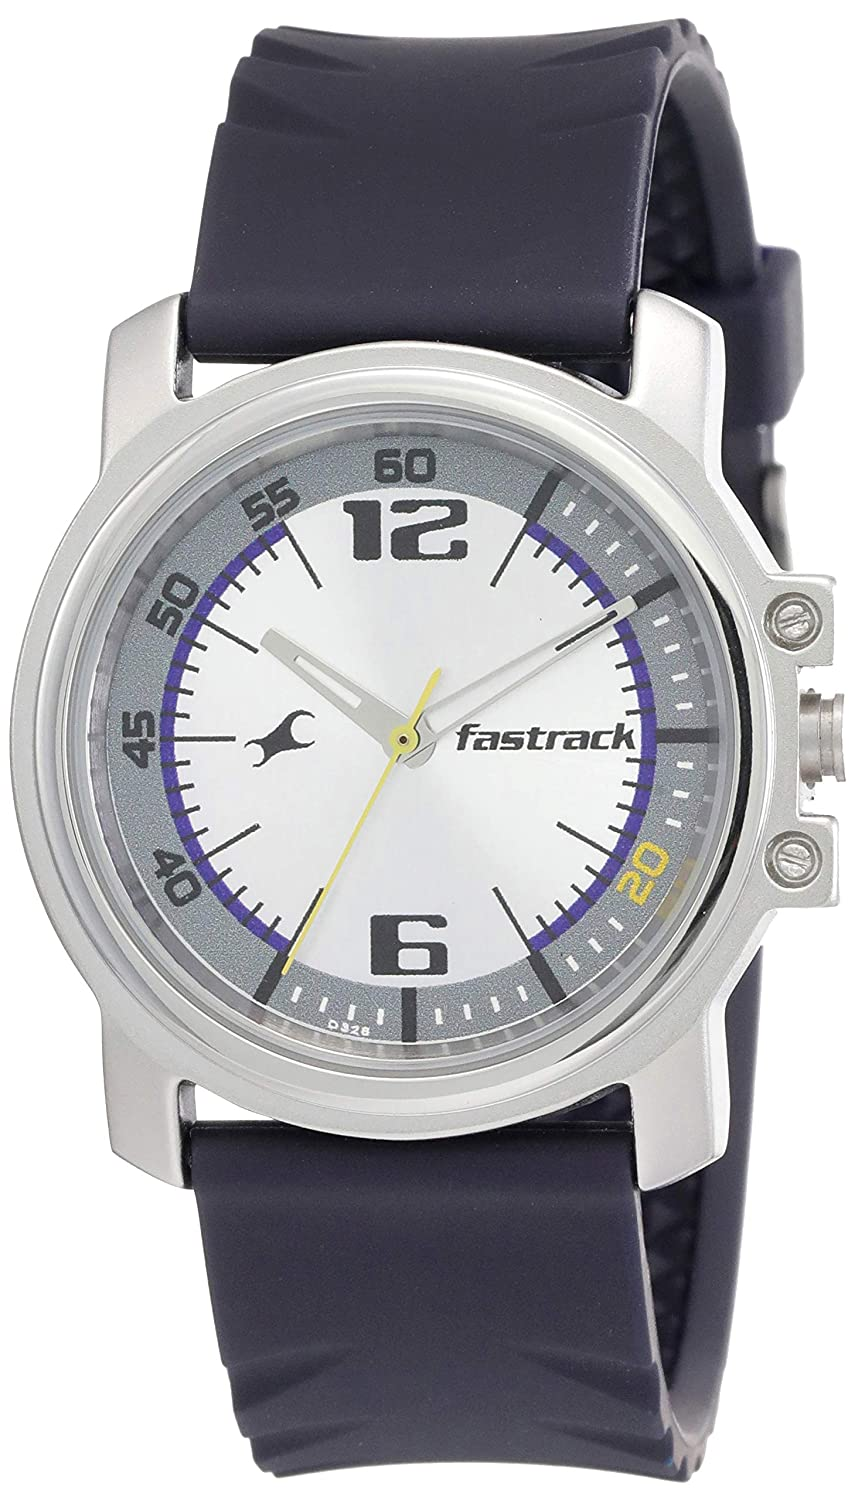 Best fastrack watches for mens below 1000 rupees